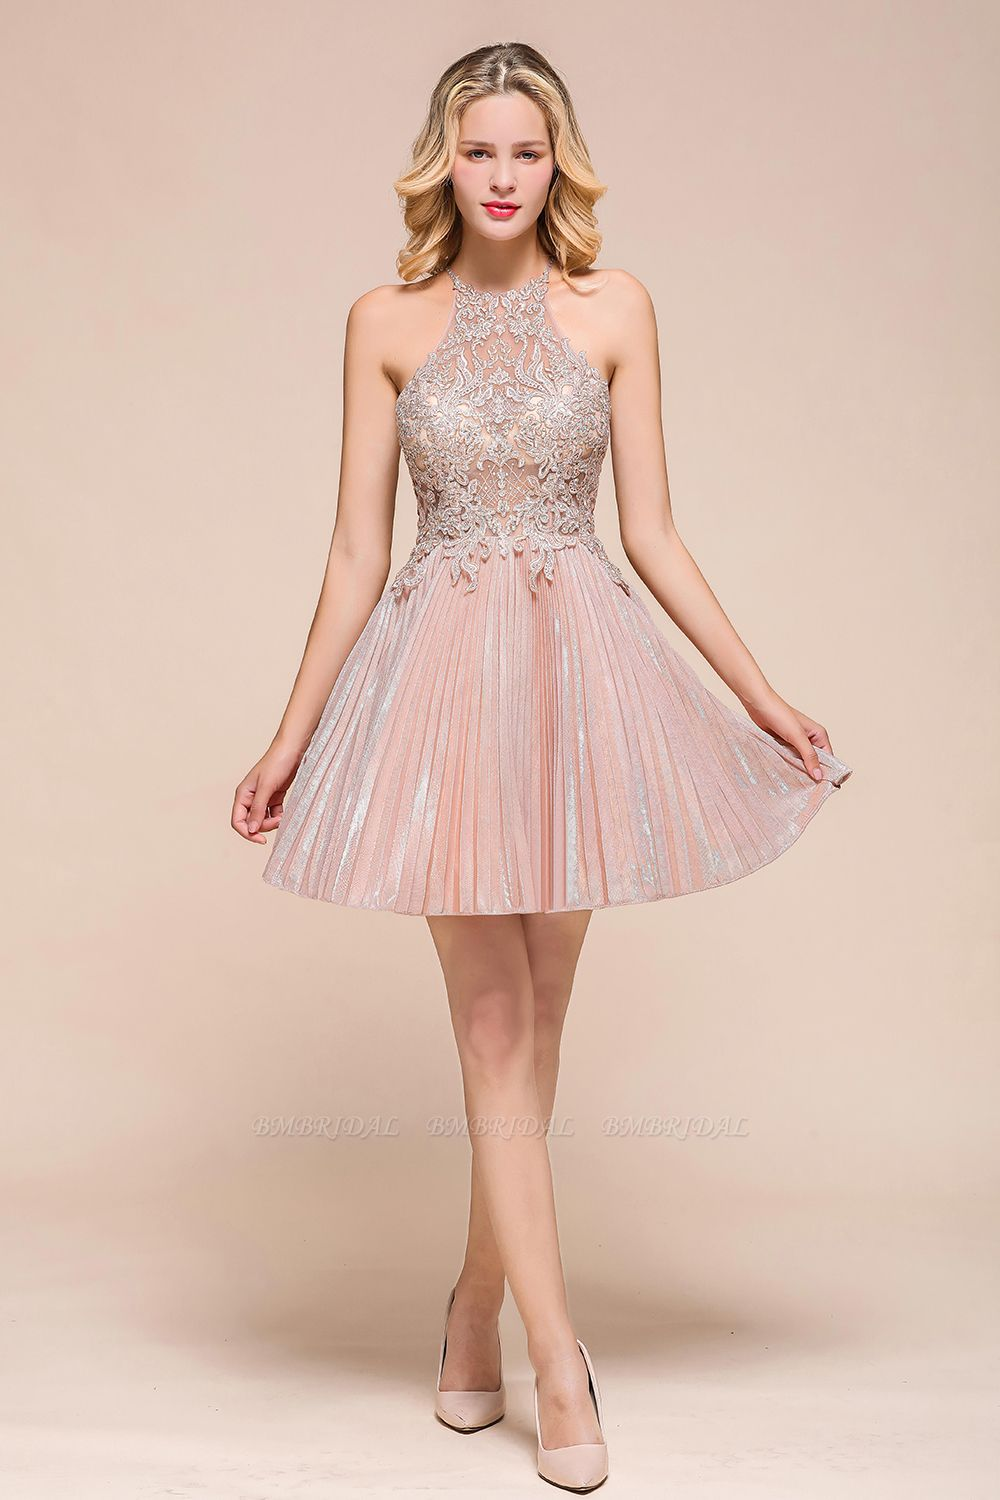 BMbridal Lovely Halter Lace Short Prom Dress Sleeveless Mini Party Gowns